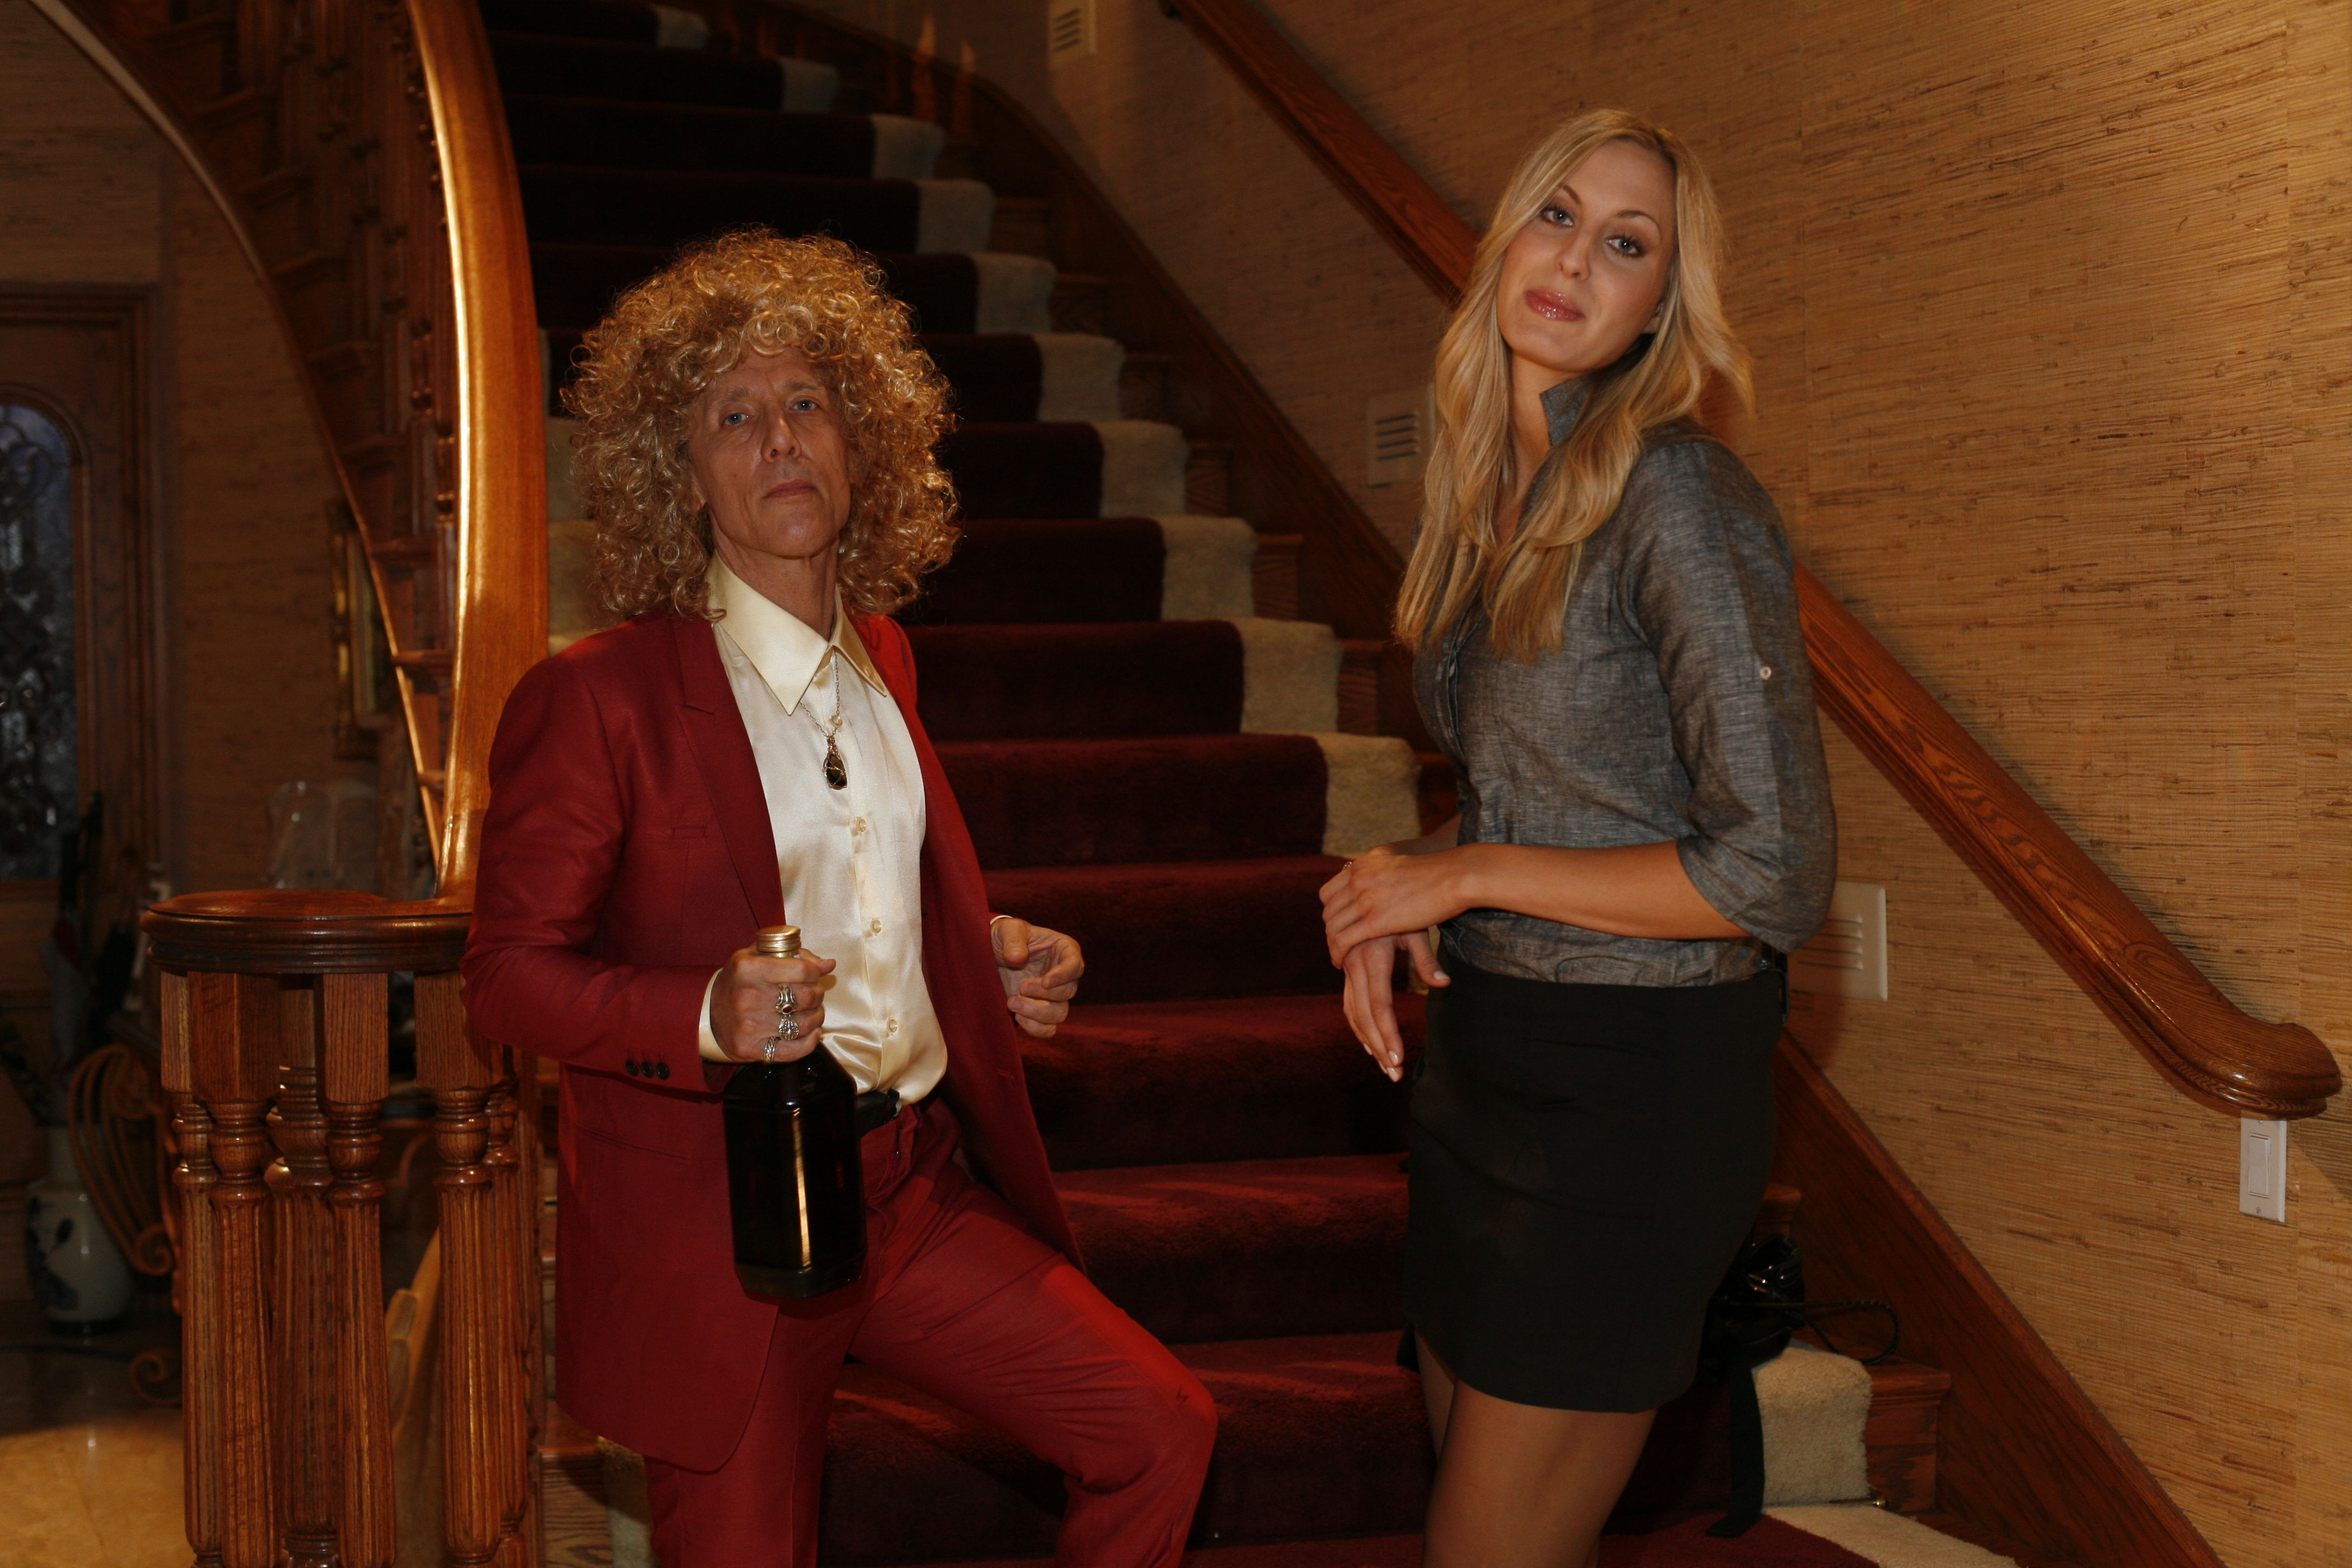 Solomon King As Phil Spector And Monica Lee As Lana Clarkson